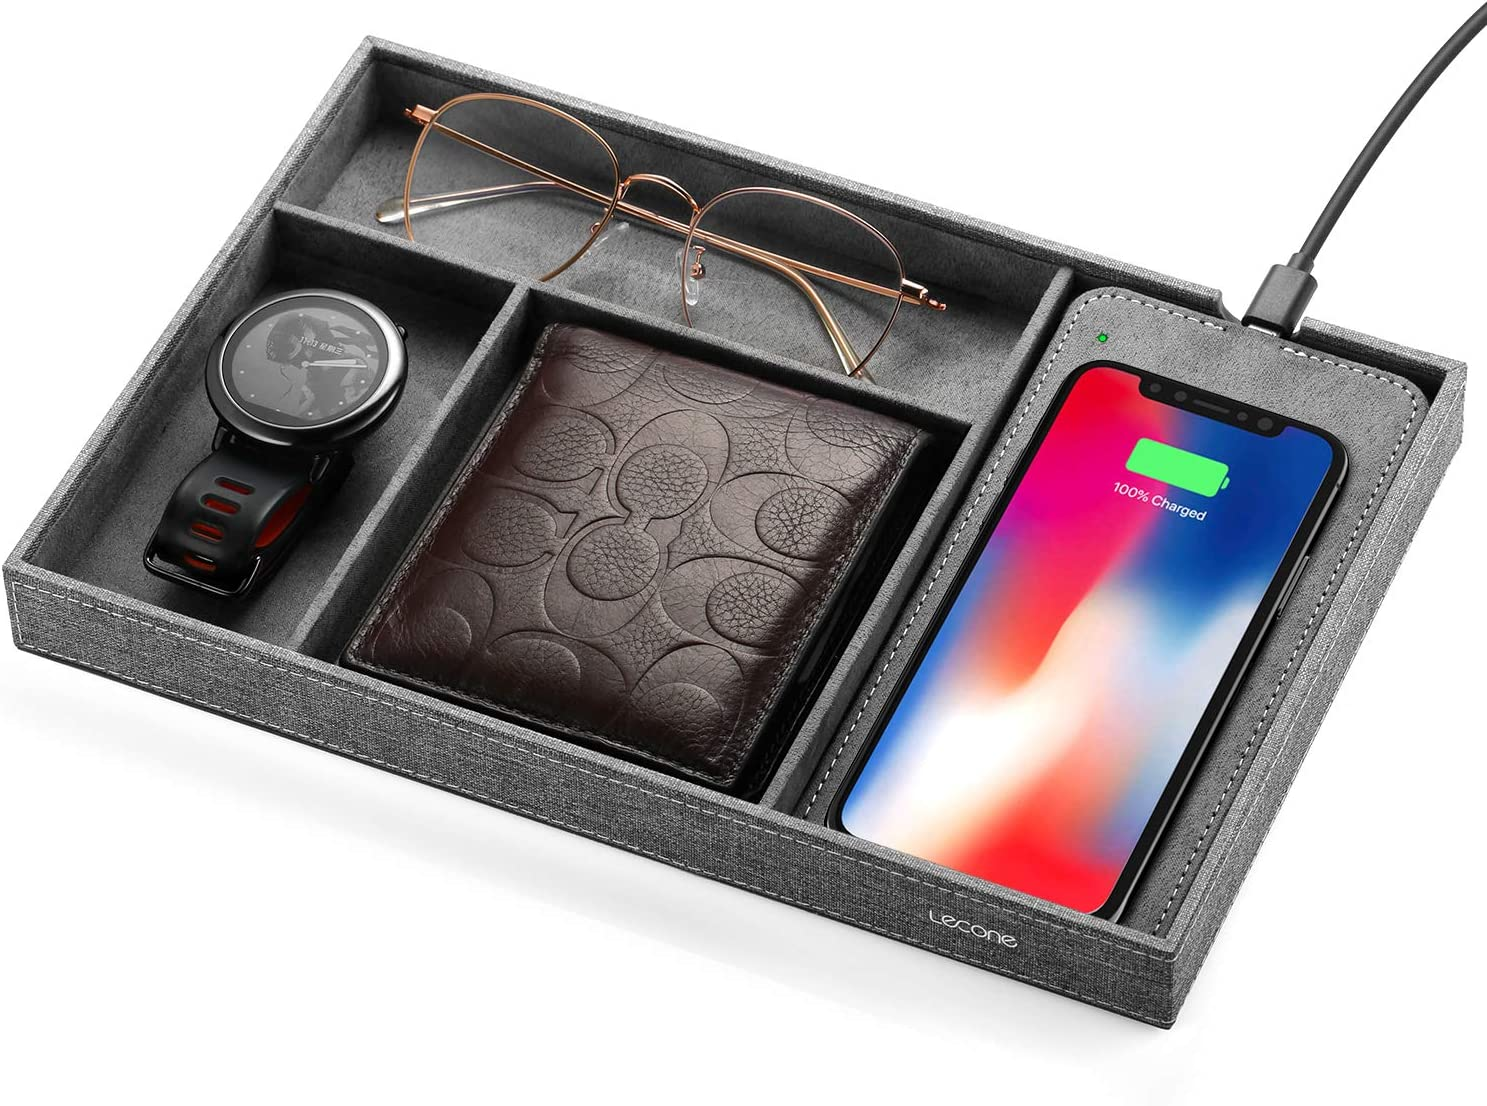 Lecone Fast Wireless Charger with Organizer Tray Qi Fabric Charging Station Table Nightstand Organizer for iPhone SE 2020/11/11 Pro/11 Pro Max/Xs MAX/XR/XS/X/8,Galaxy S20/Note 20/S10 Plus, Grey